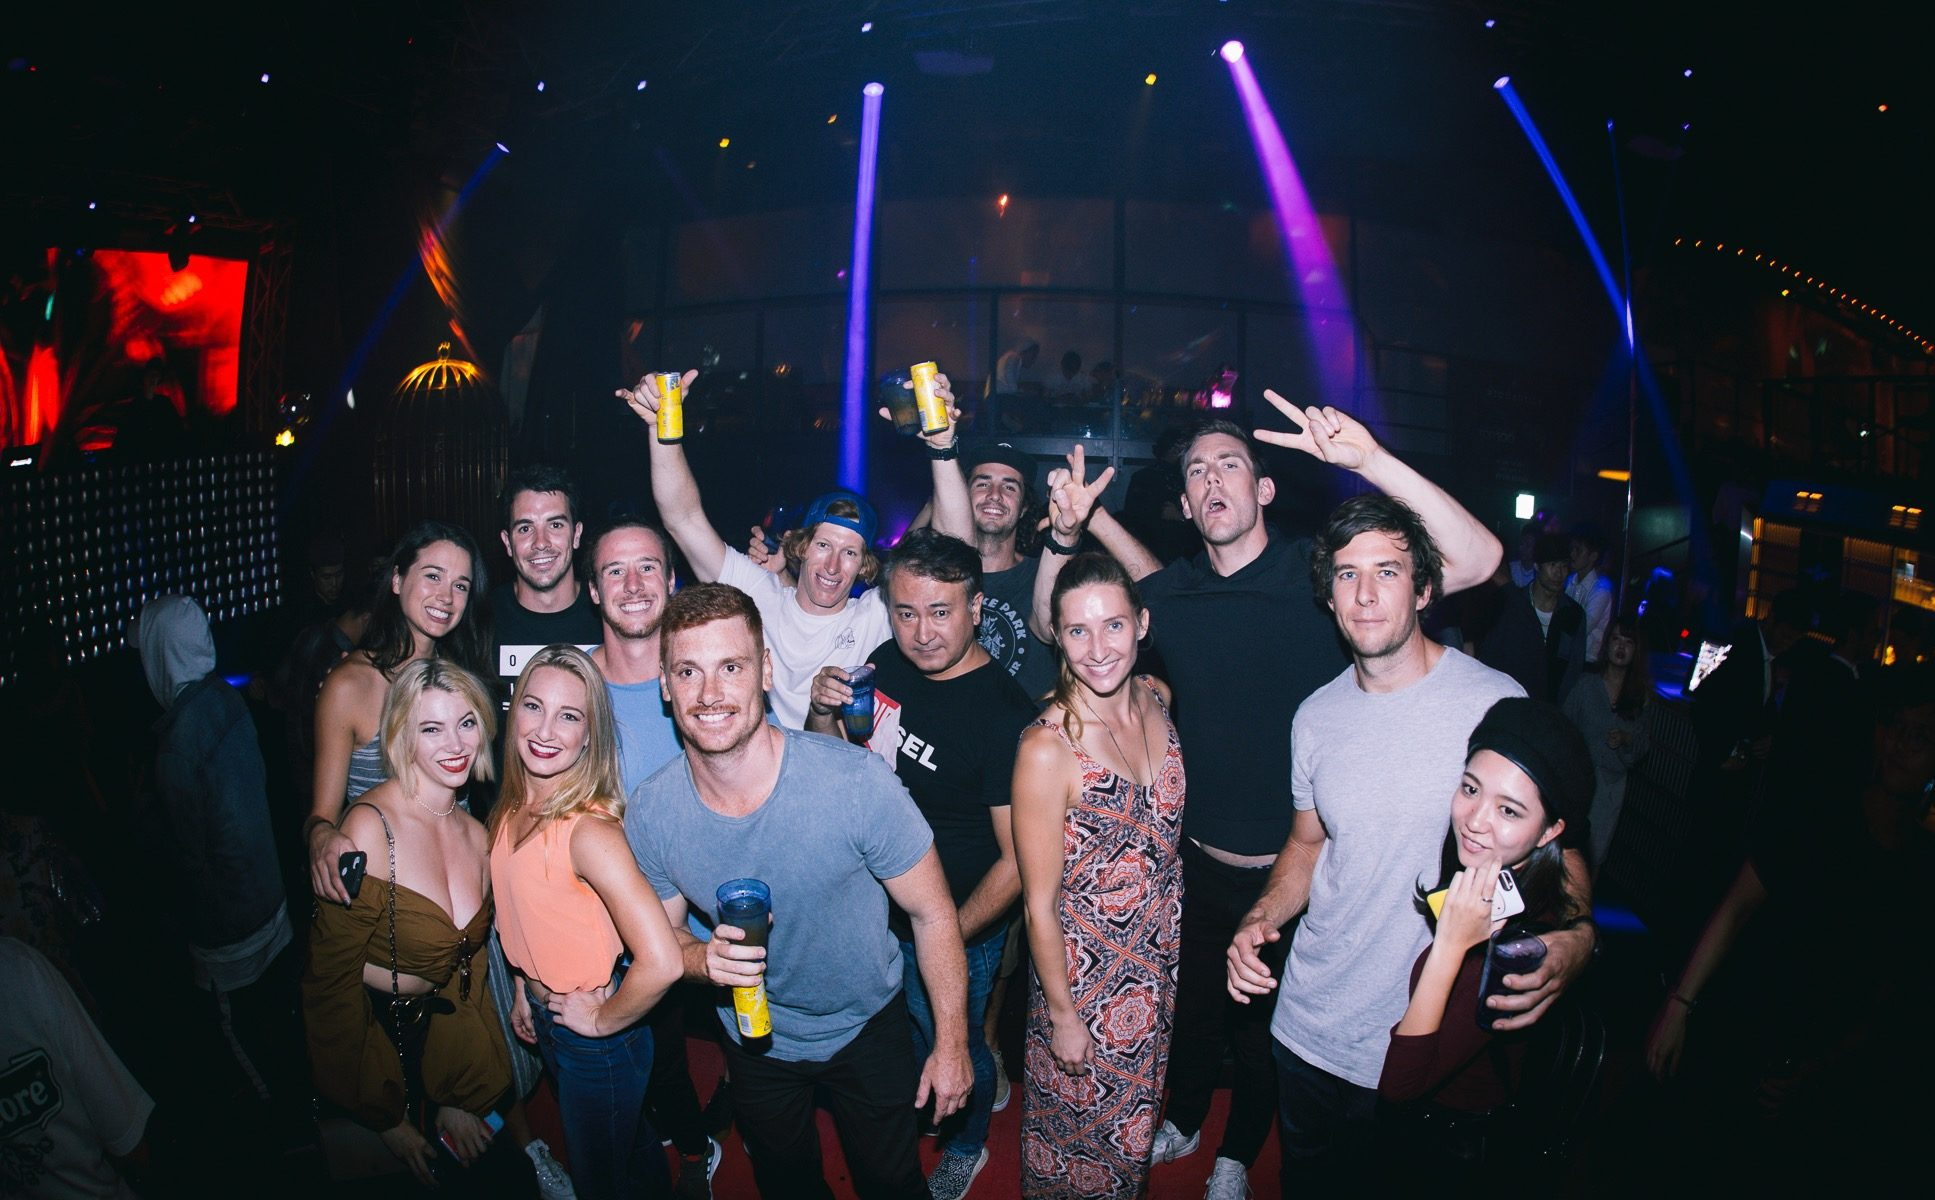 Making Japanese Friends at Nightclubs!